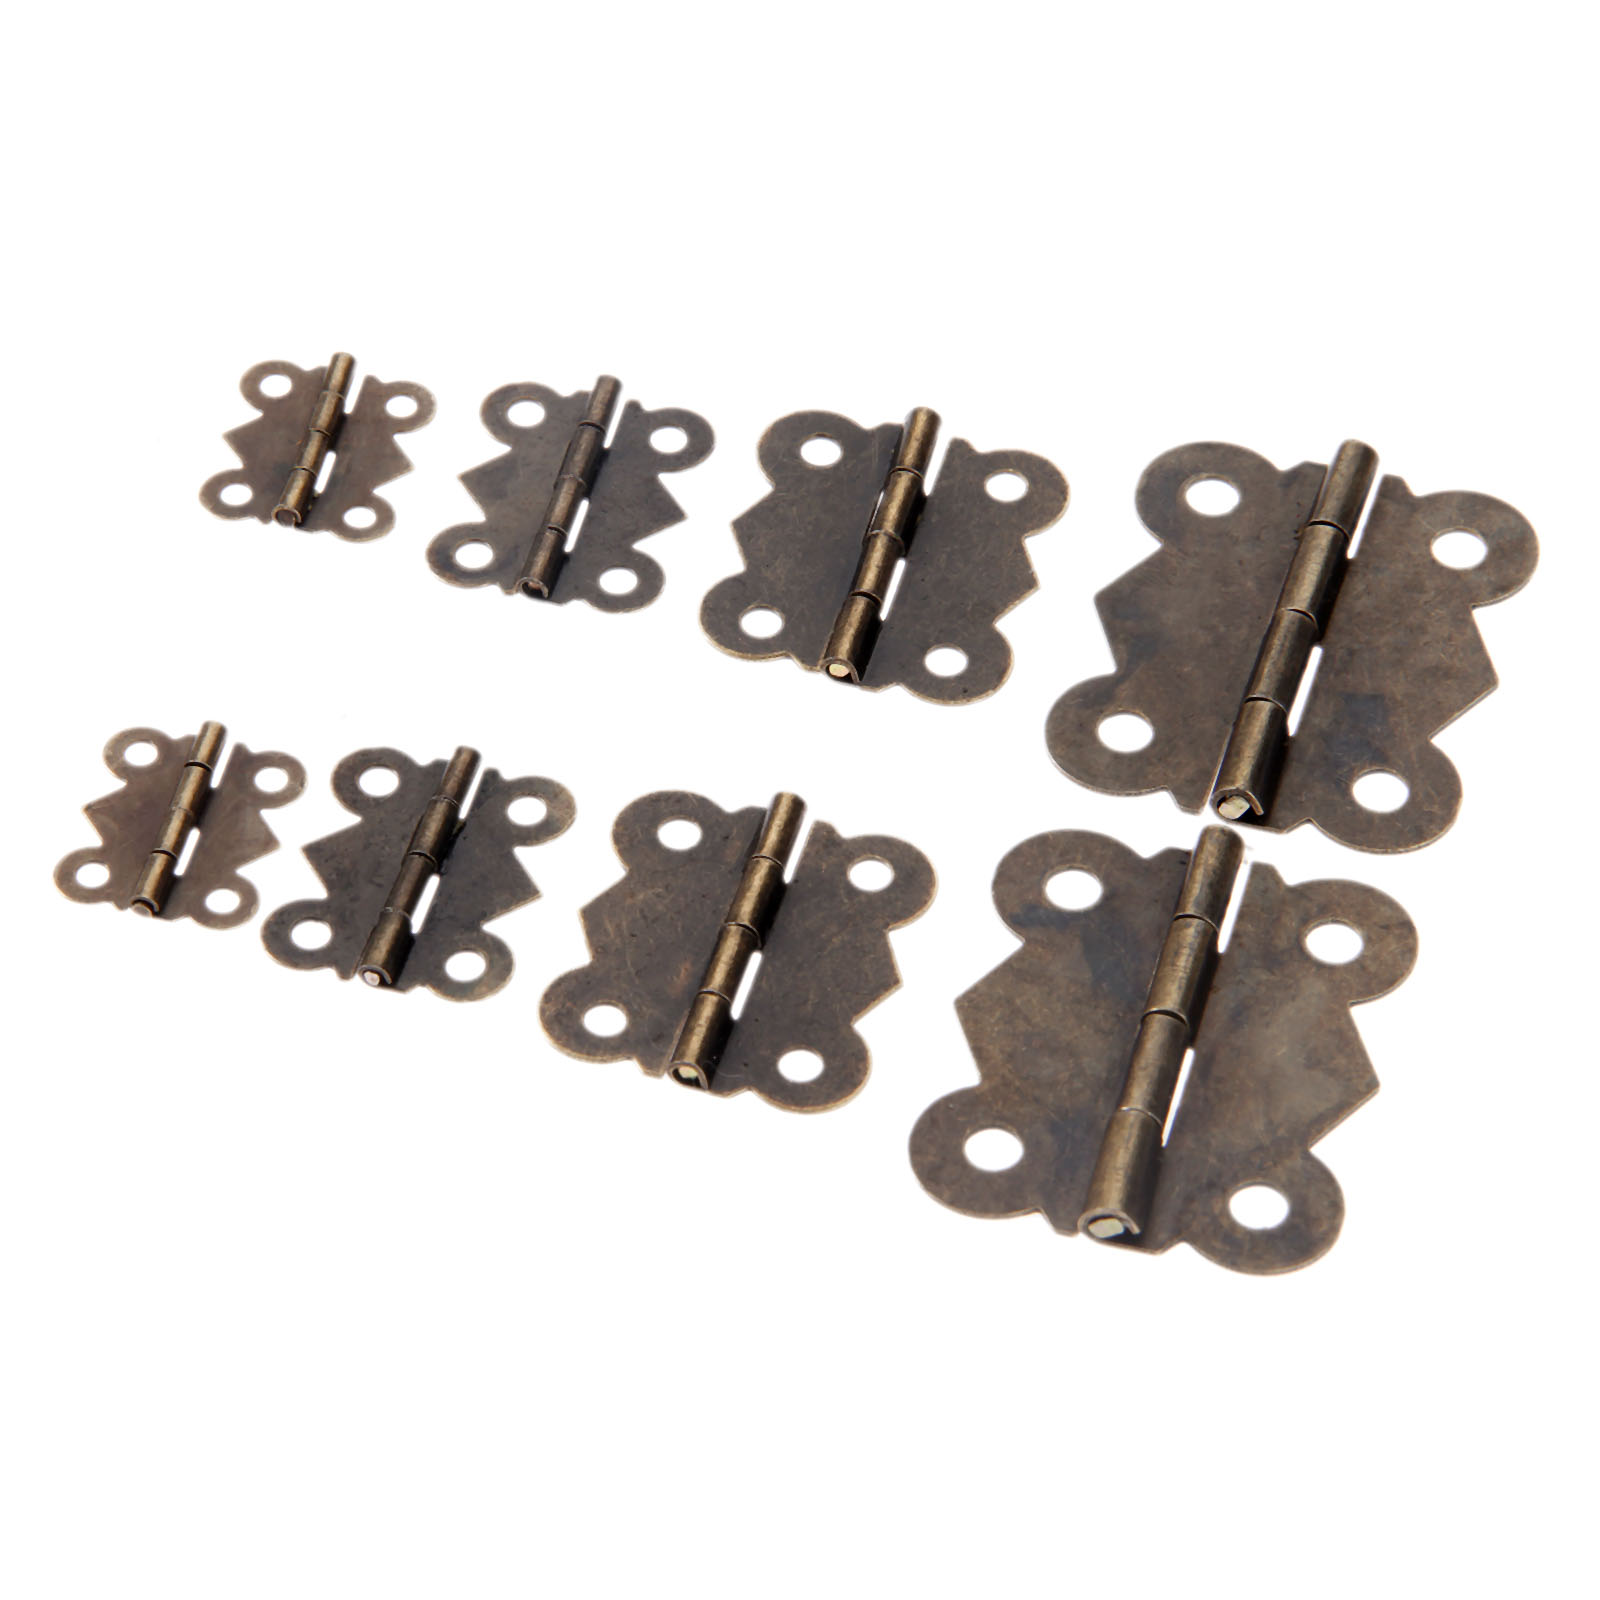 10Pcs Mini Butterfly Door Hinges Antique Bronze Cabinet Drawer Jewellery Box Decorate Hinge For Furniture Hardware with Screws in Cabinet Hinges from Home Improvement